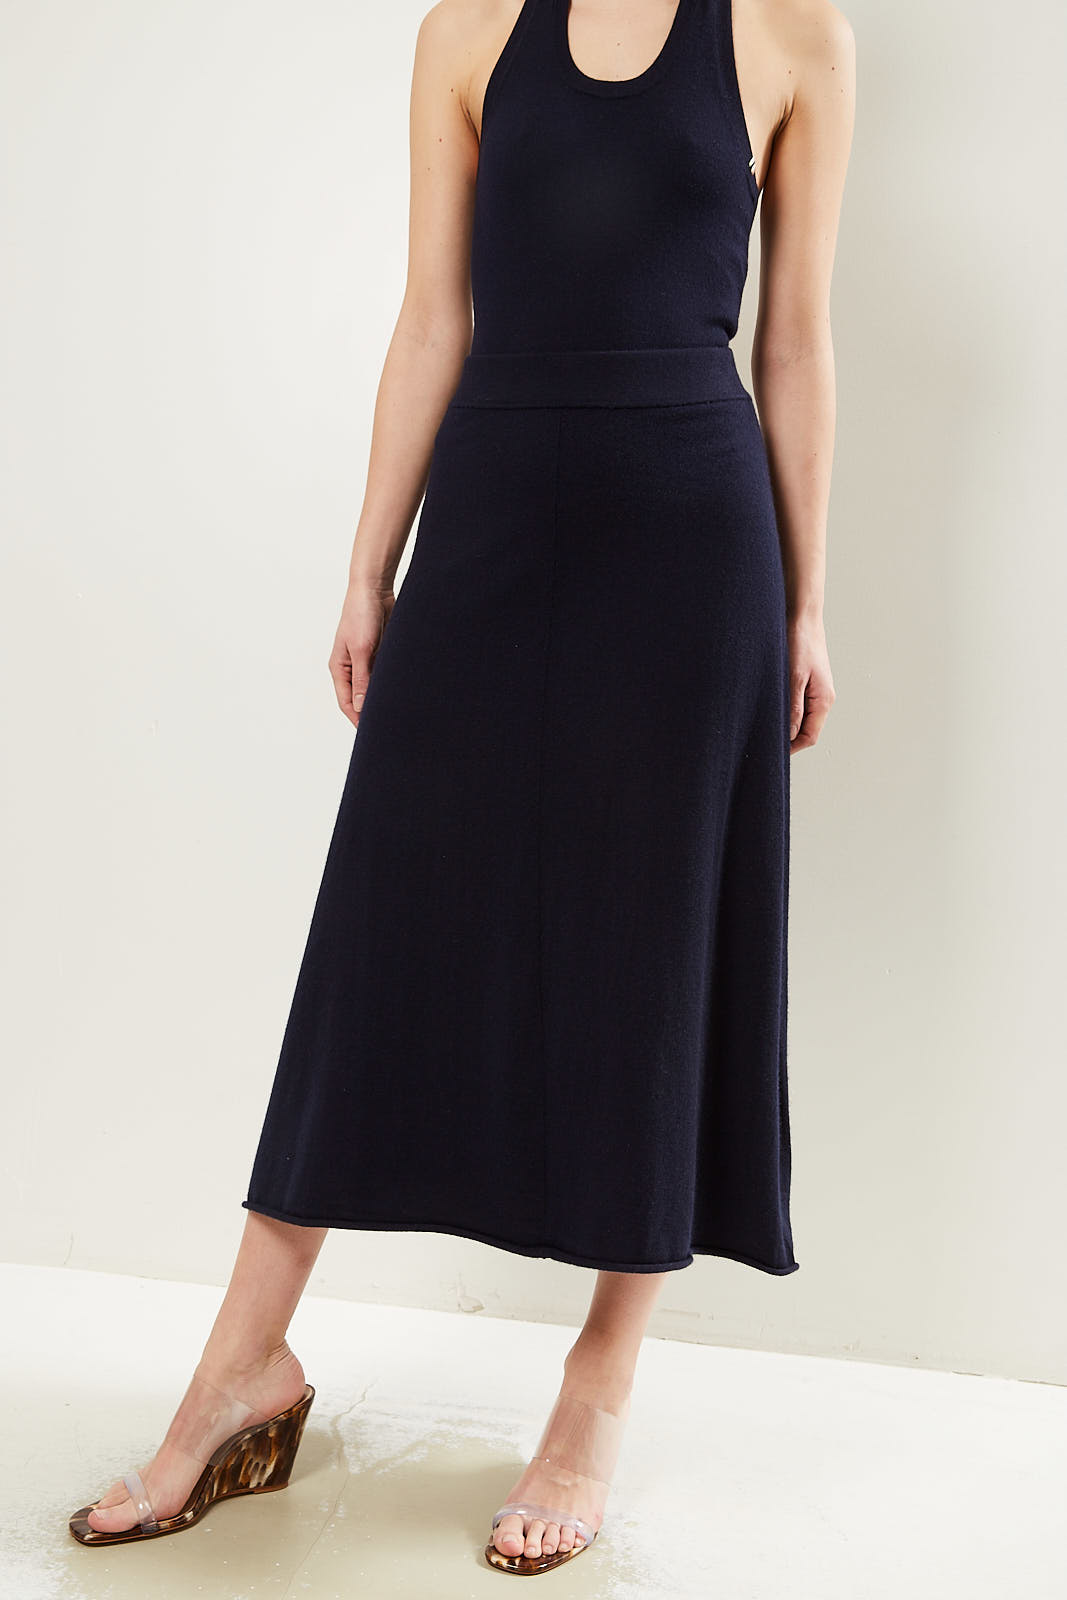 extreme cashmere Midi cashmere skirt navy